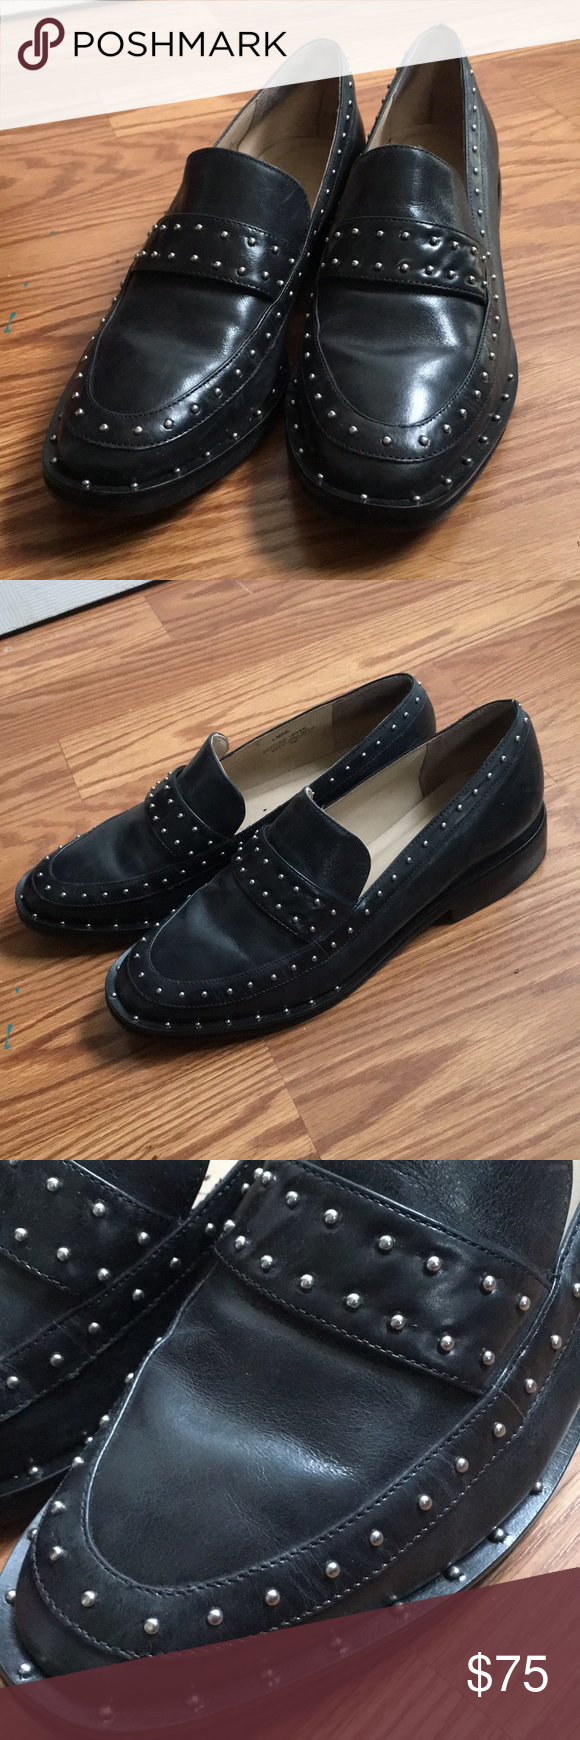 Lf Life Studded Loafers Only Worn A Handful Of Times They Re A Little Tight On My Feet Brand Is Lf Life Size 7 Lf Studded Loafers Loafers Dress Shoes Men [ 1740 x 580 Pixel ]